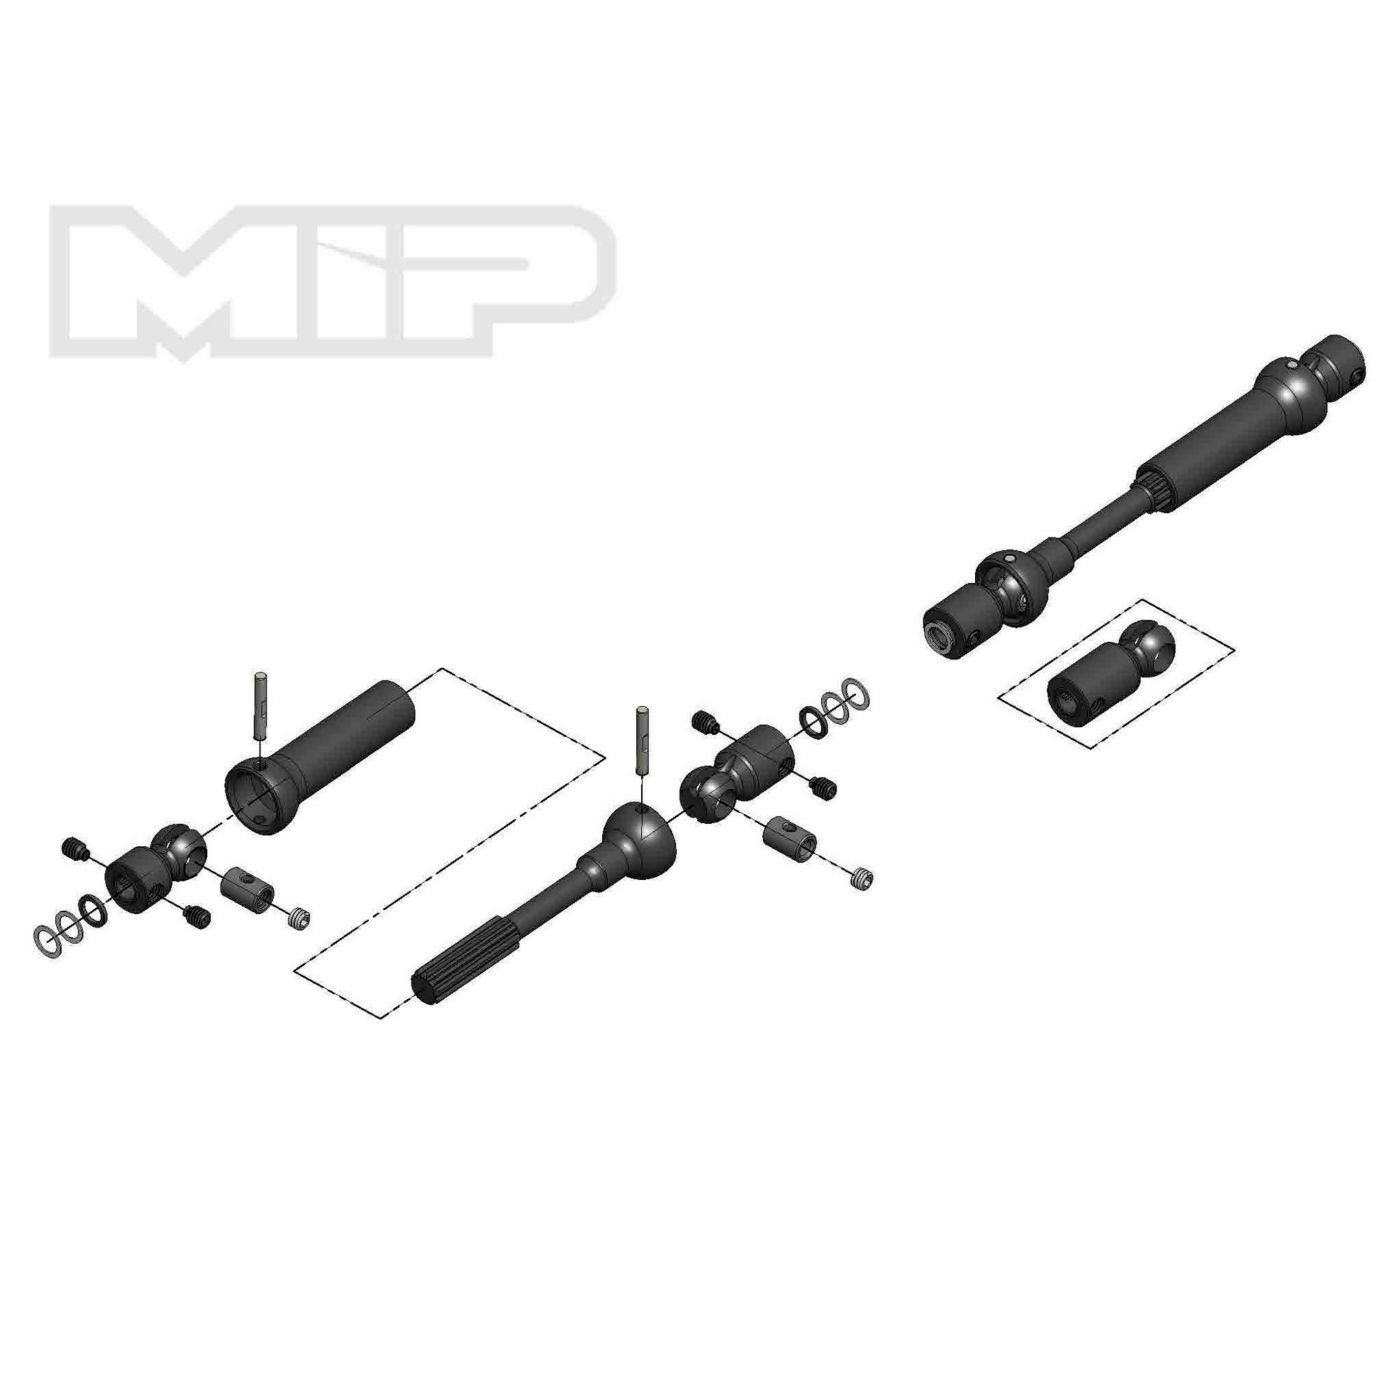 MIP Center Drive Kit 115mm - 140mm with 5mm Hubs - MIP18160